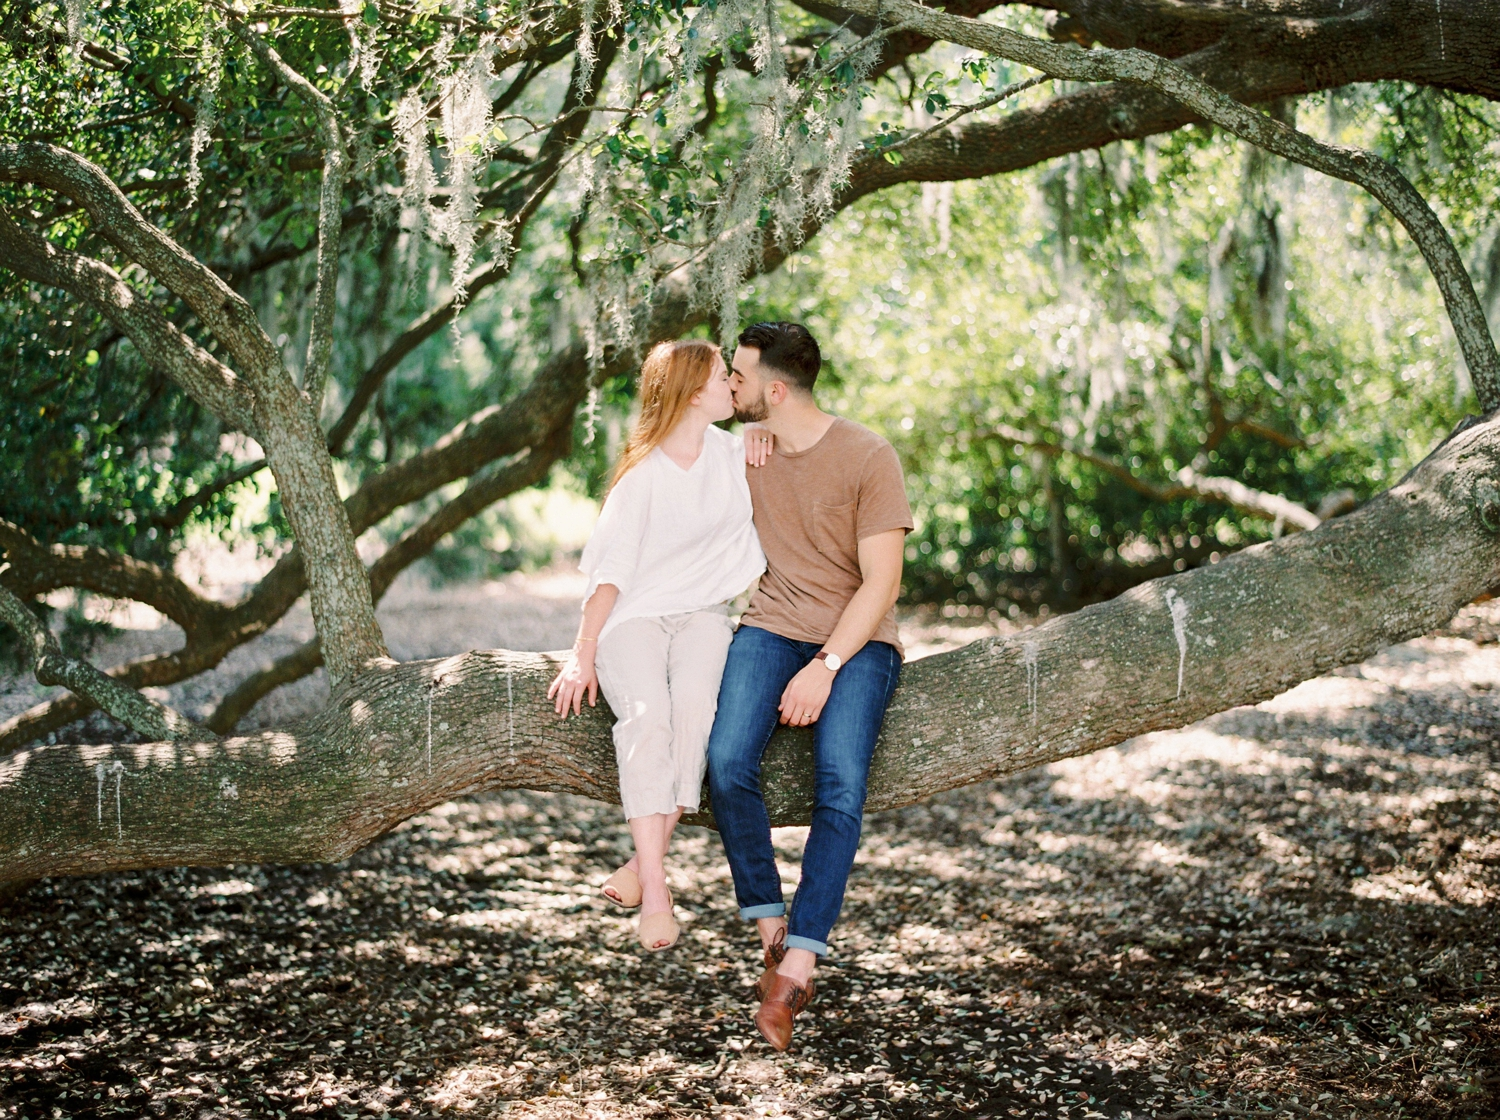 on wedding photographers | charleston anniversary | Justine Milton fine art film Photography | south carolina anniversary | fine art film photography | kissing